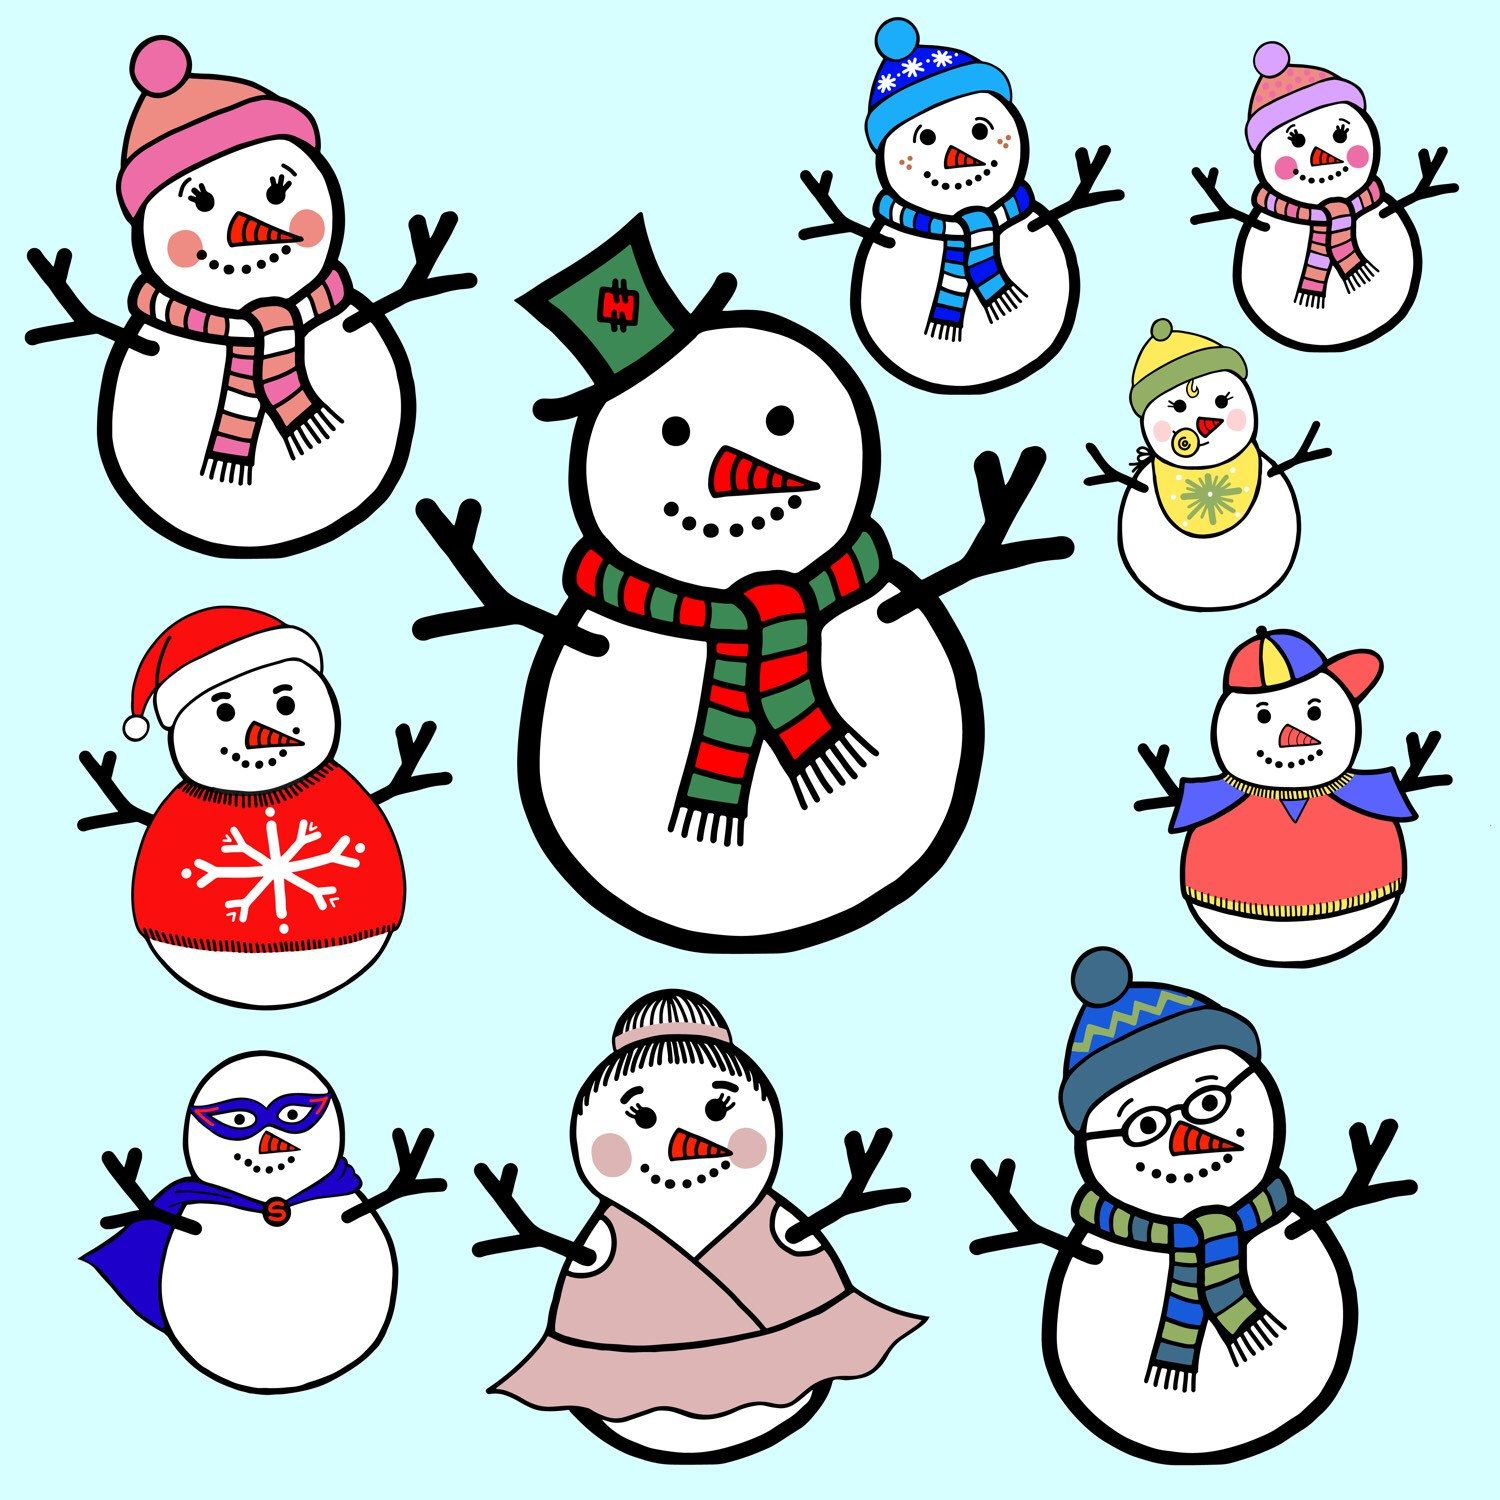 new clipart snowman family sleepy fox prints rh pinterest com